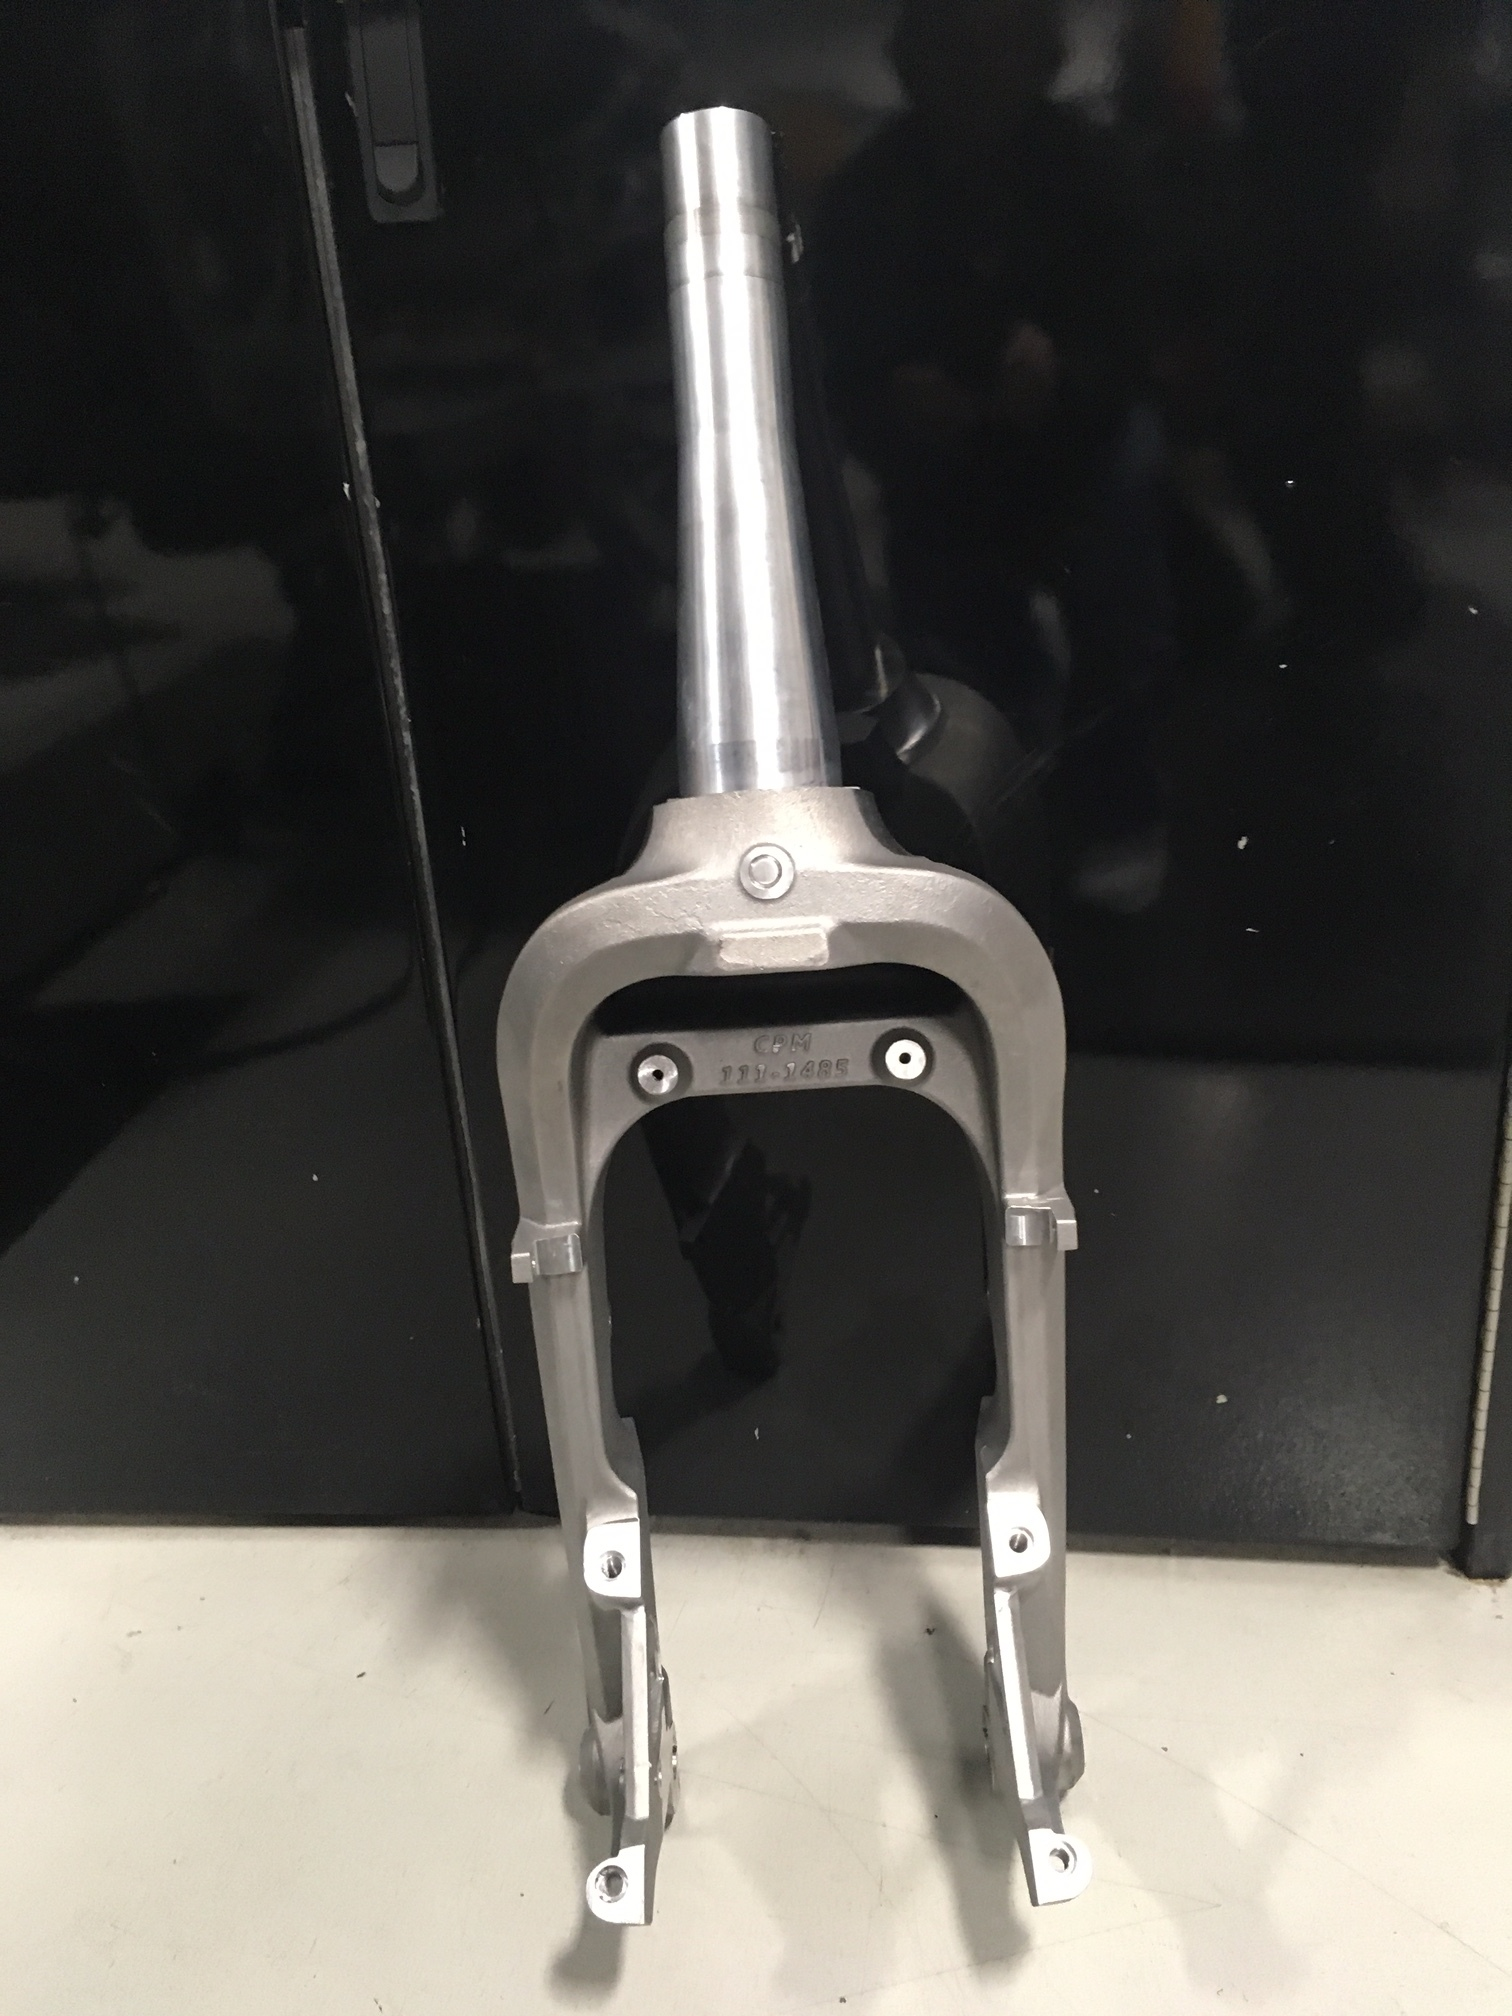 Goldwing 1800 trike fork assembly